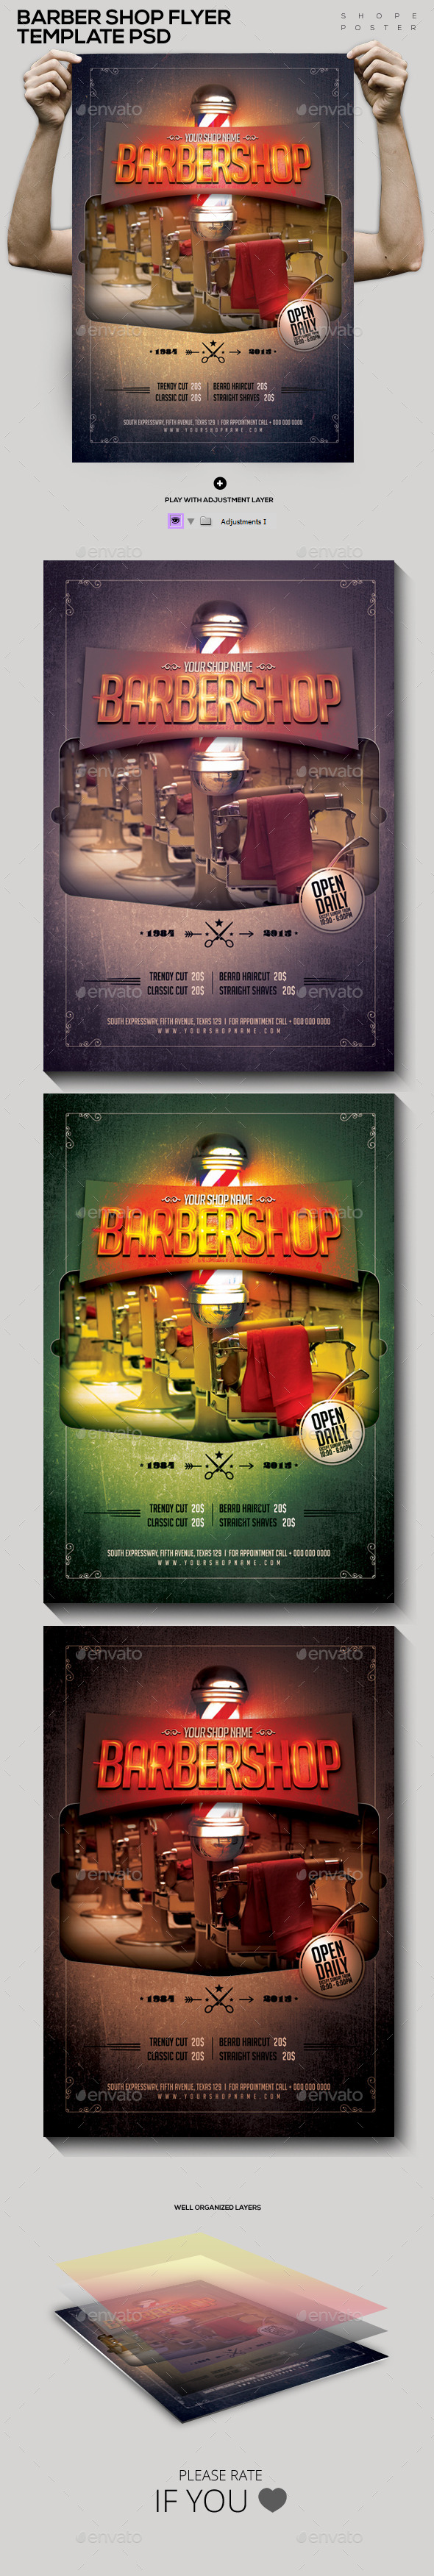 Barbershop Template PSD Flyer/Poster - Corporate Flyers